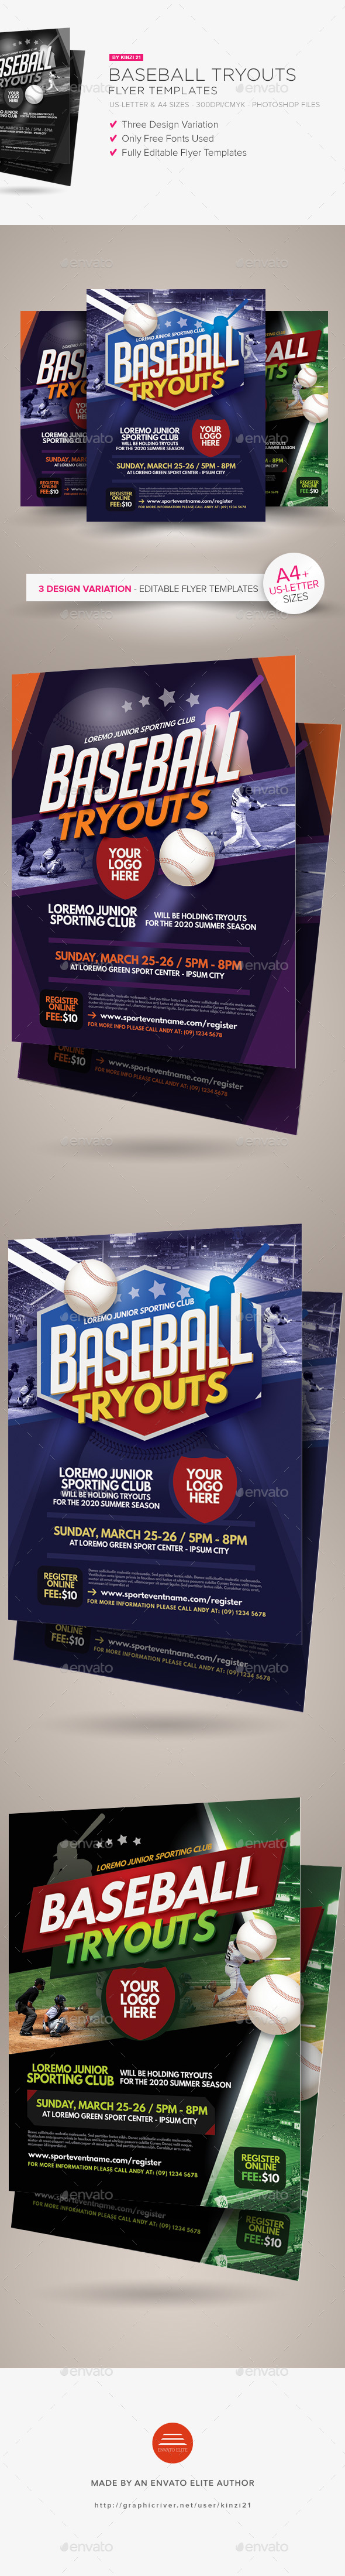 Baseball Tryouts Flyer Templates - Sports Events